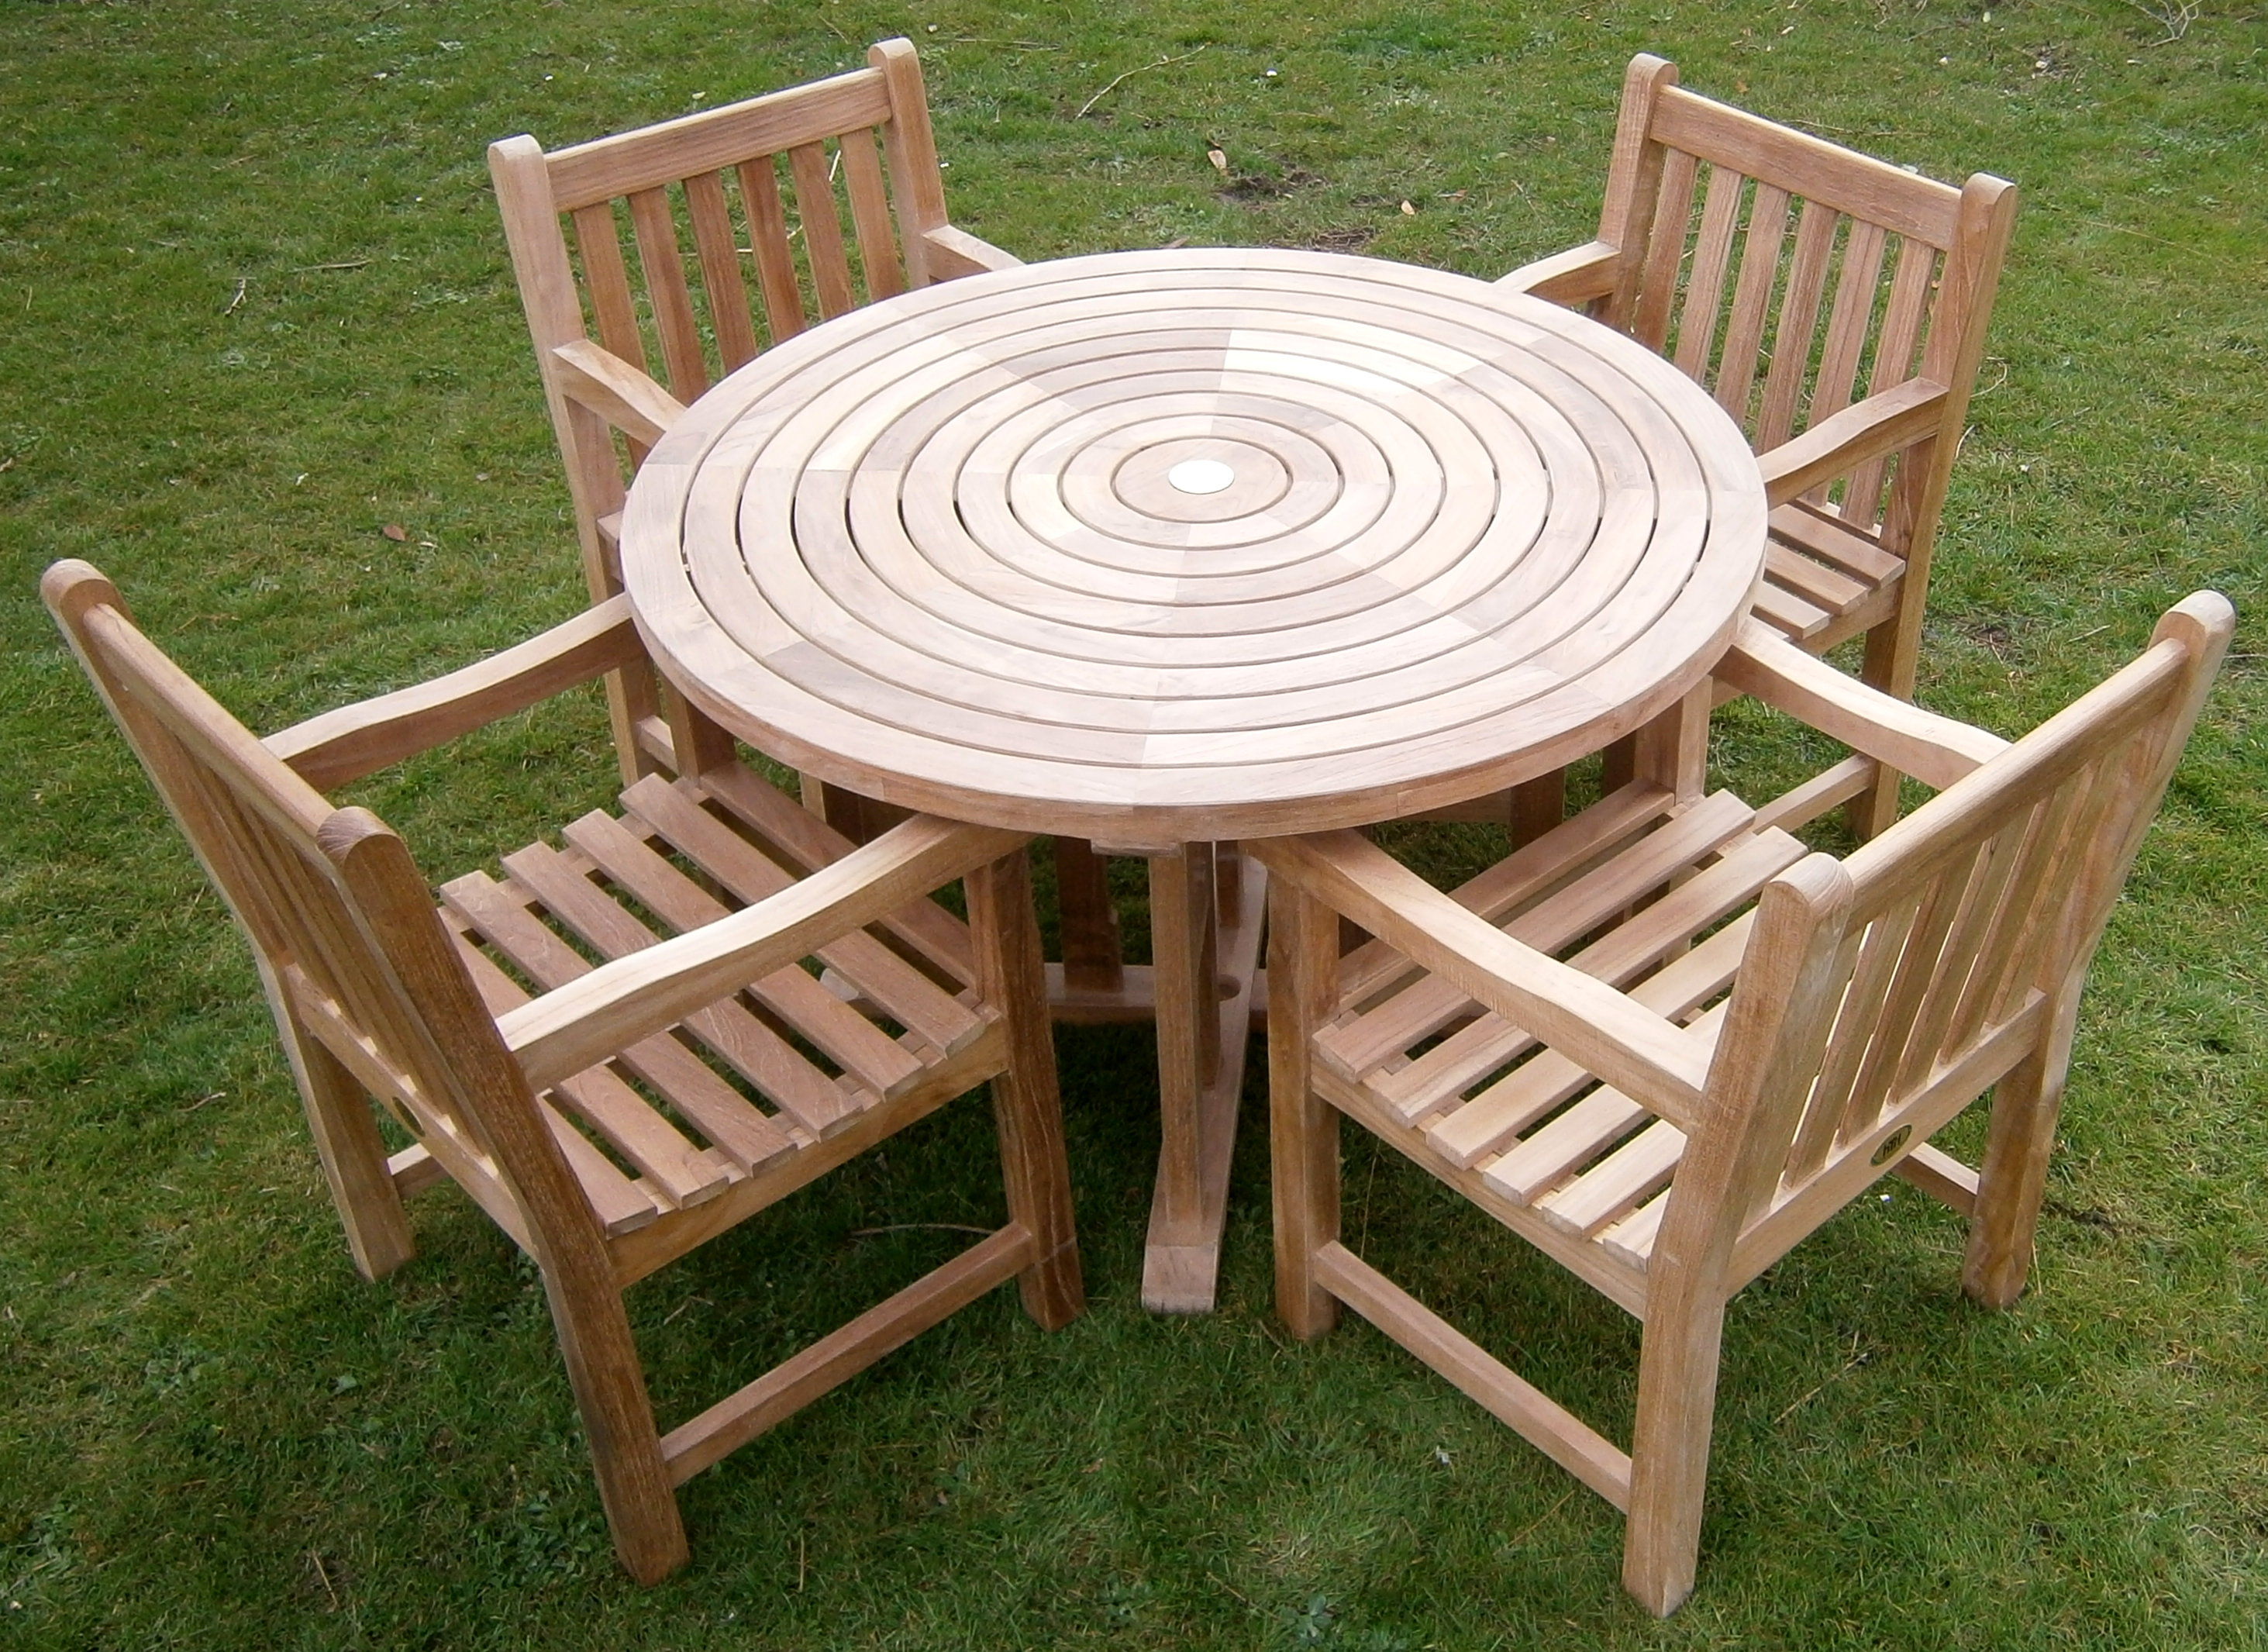 This Delightful Table And Chair Set Is A Fantastic Piece That Stands Out  Above Your Standard Garden Furniture